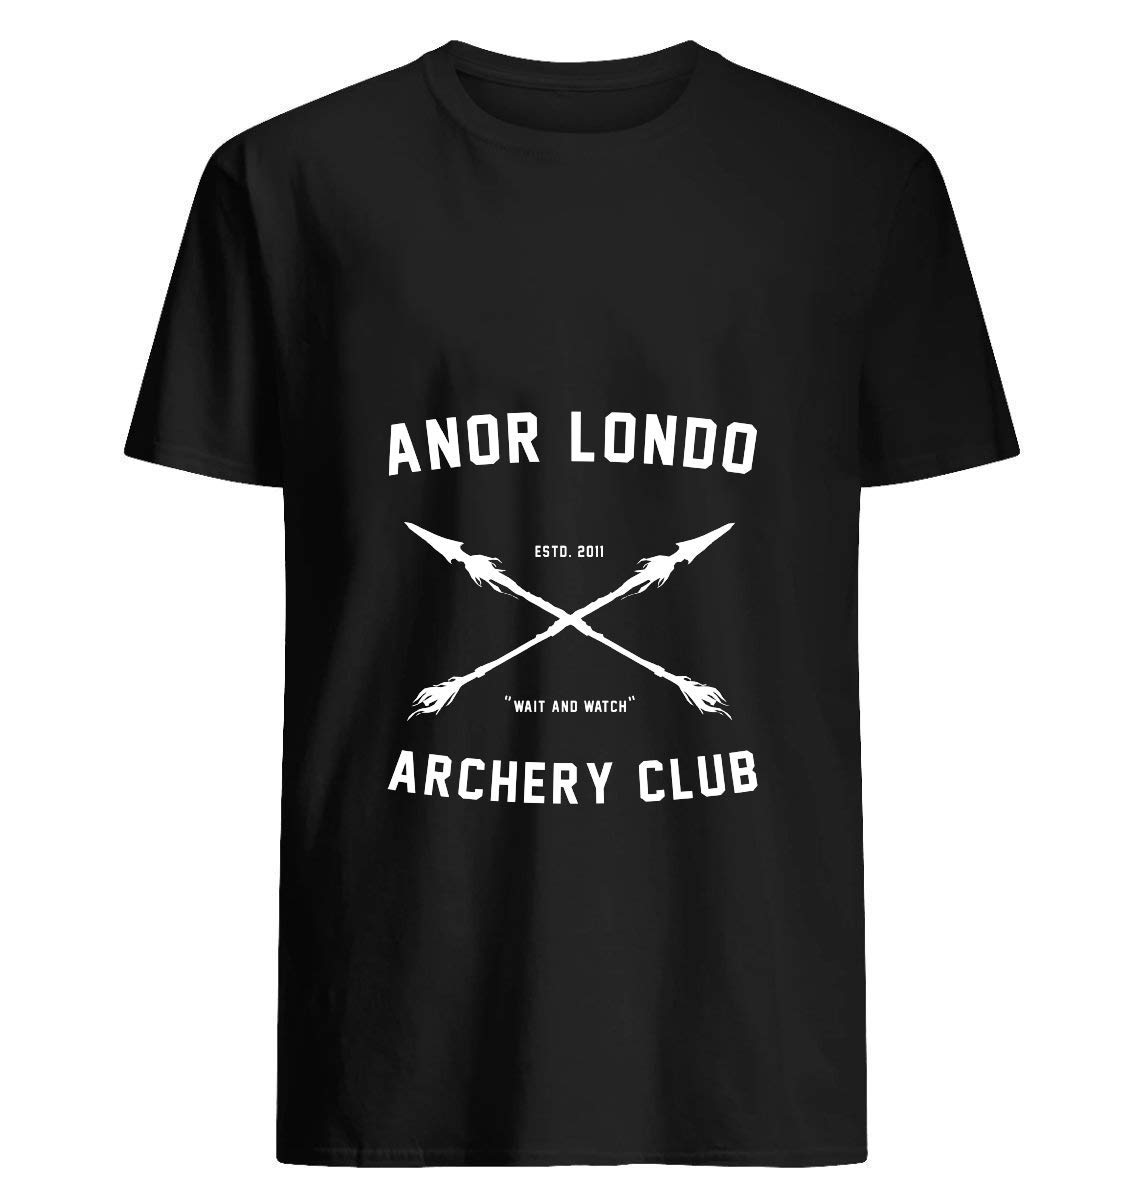 Anor Londo Ary Club 11 T Shirt For Unisex